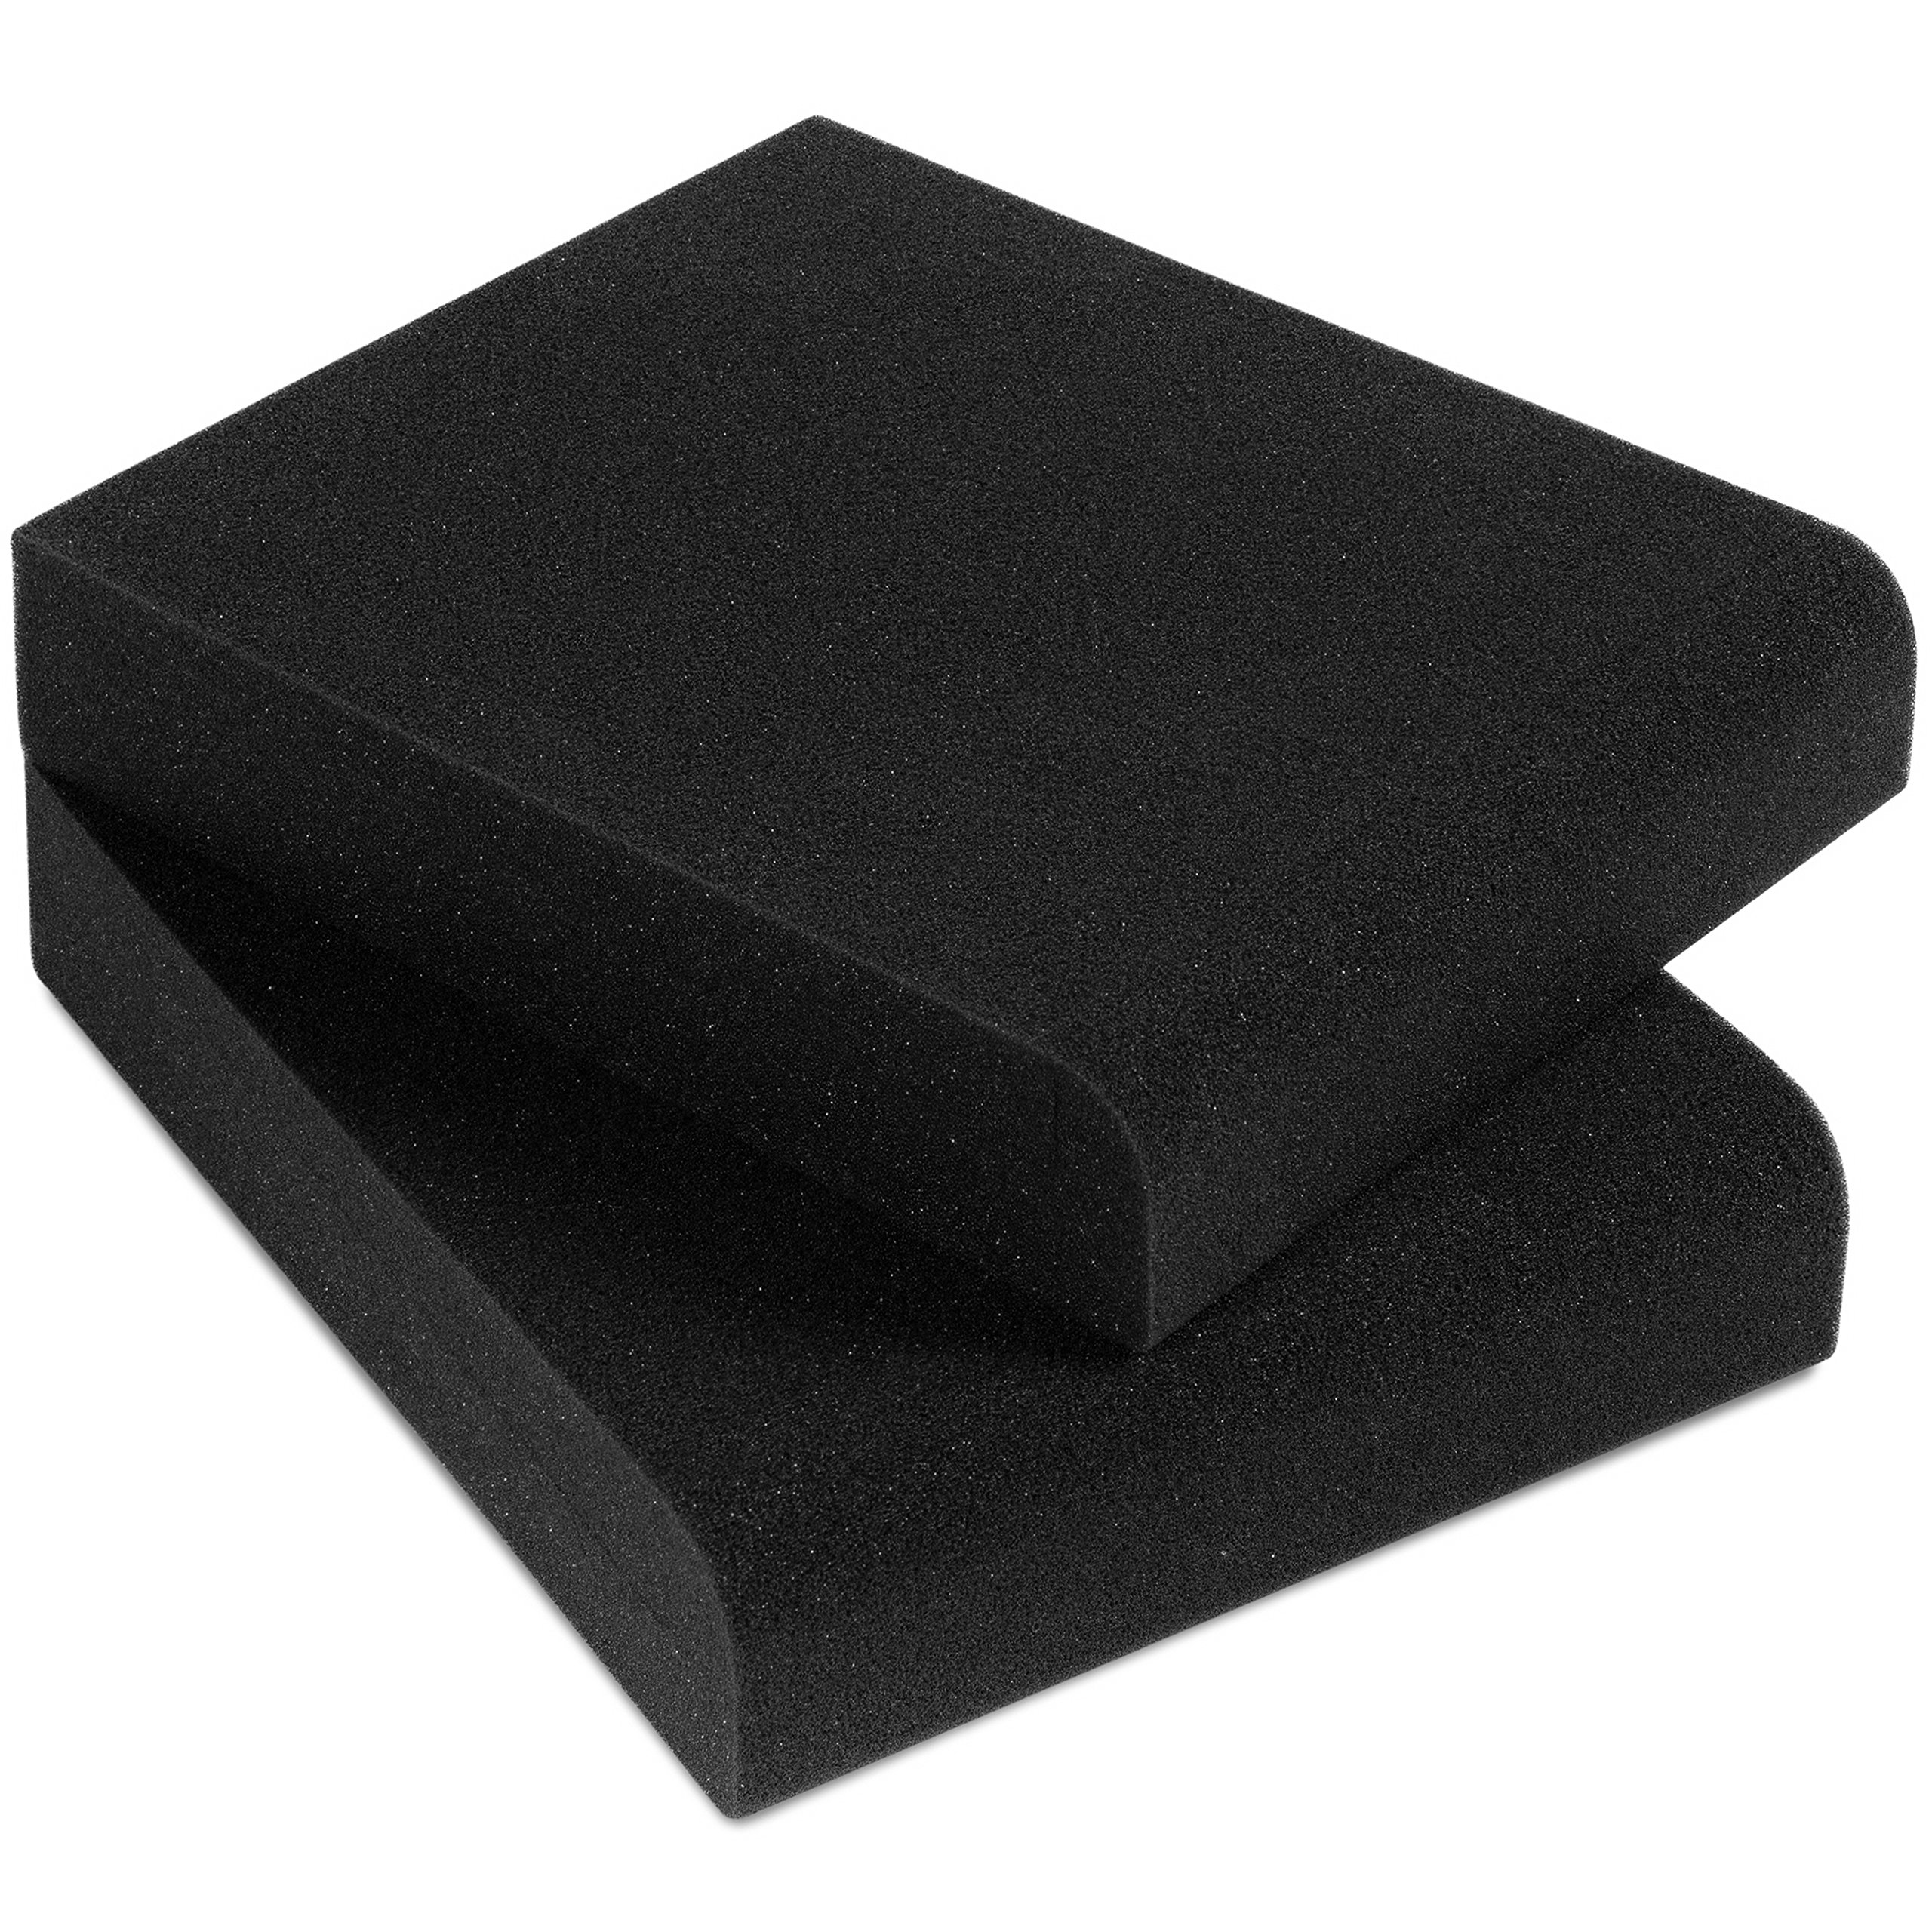 Sound Addicted - Studio Monitor Isolation Pads for 3'' - 4.5'' Inch Small Speakers, Pair of Two High Density Acoustic Stands Foam Which Fits most Bookshelf's and Desktops | SMPad 4